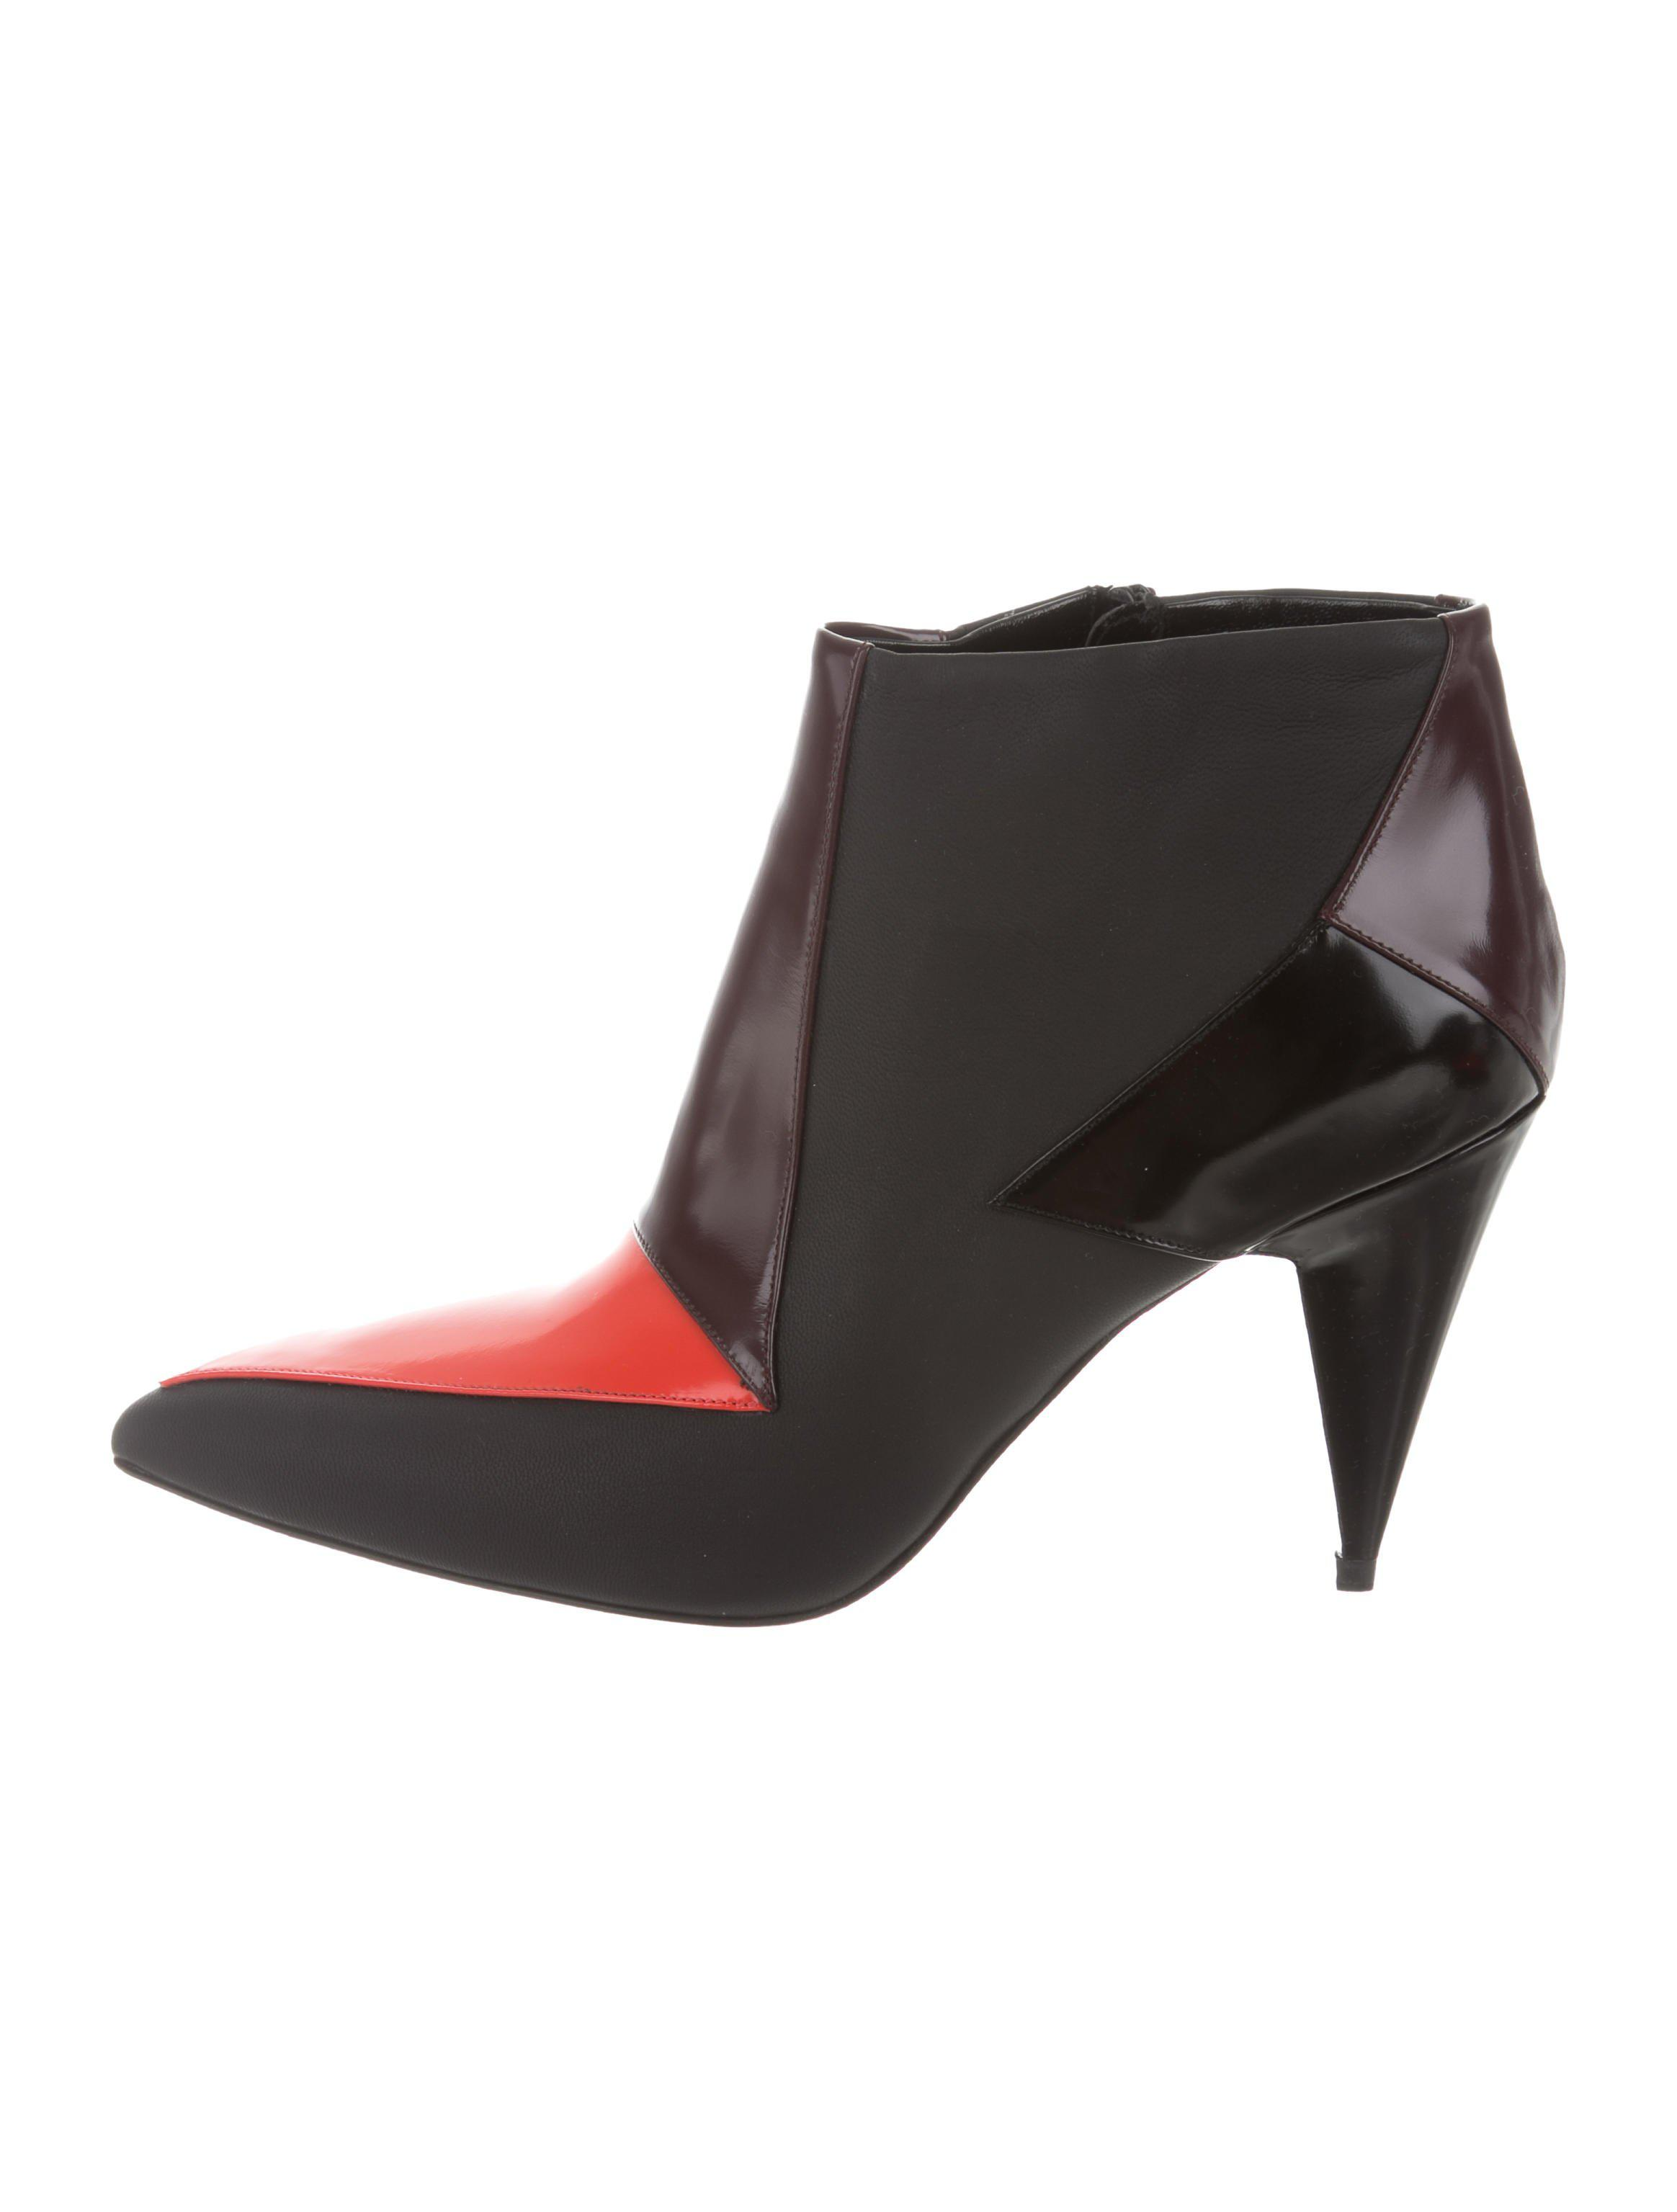 Pierre Hardy Colorblock Pointed-Toe Booties w/ Tags clearance footlocker clearance supply 6wjsCTwKH9